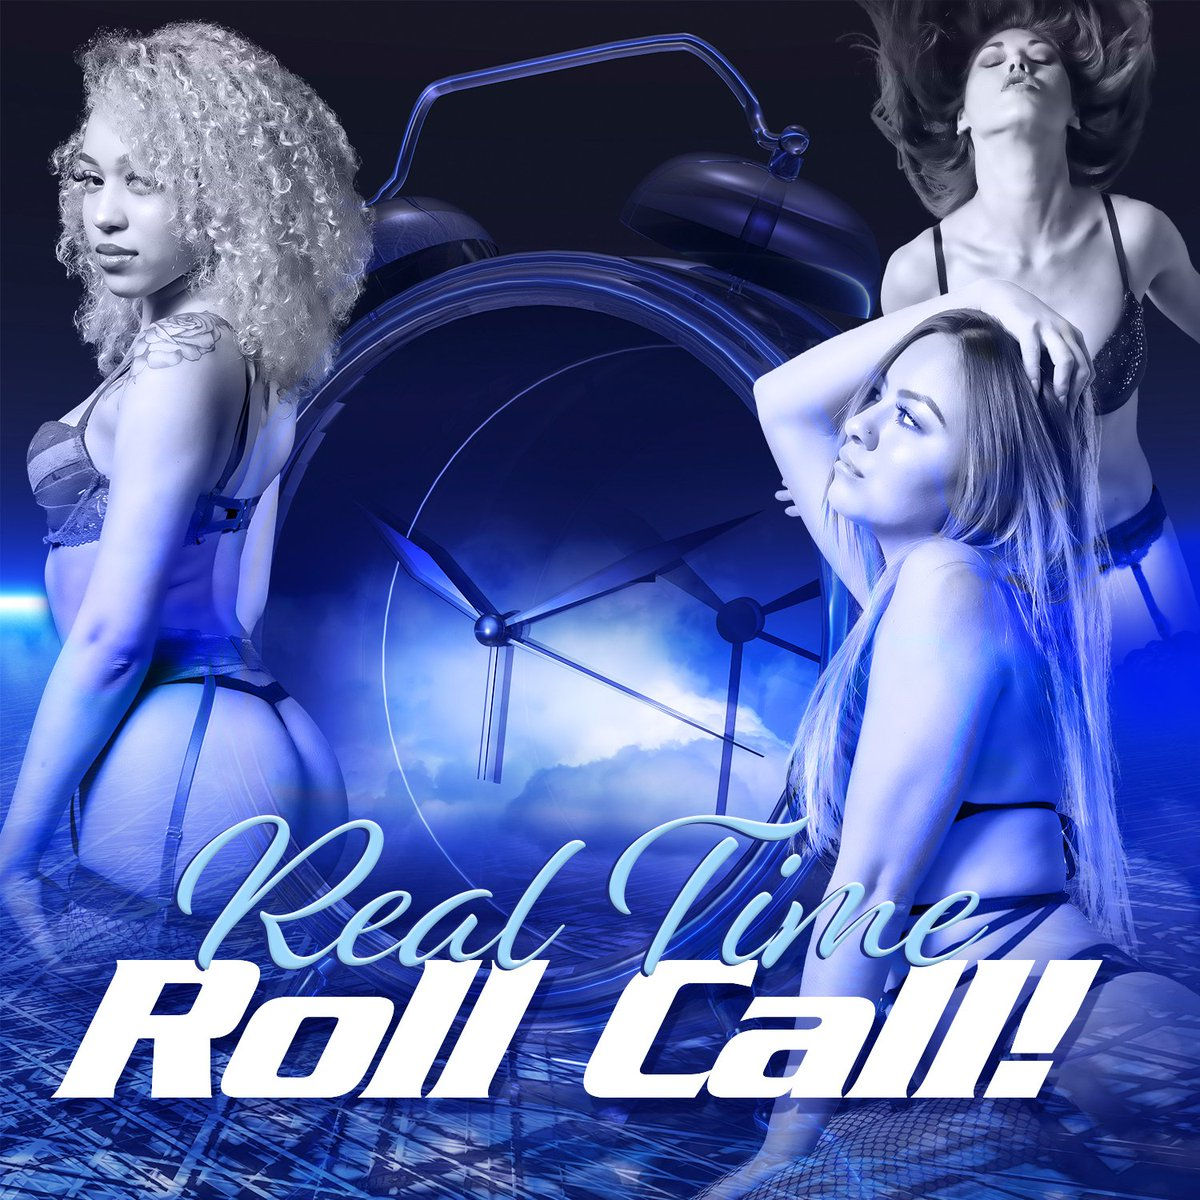 Come and have some fun with GWEN, RAYNE, OASIS, NATALIE, DANIKA, RILEY, COCO, AMIRA & BUNNY! We're throwing it back all night! You deserve to have some fun with us! . . . #Rollcall #FantasyThursday #TBT #ThirstyThursday #fun #sexy #localfavorite #mousesear #Knoxville #stripjoint